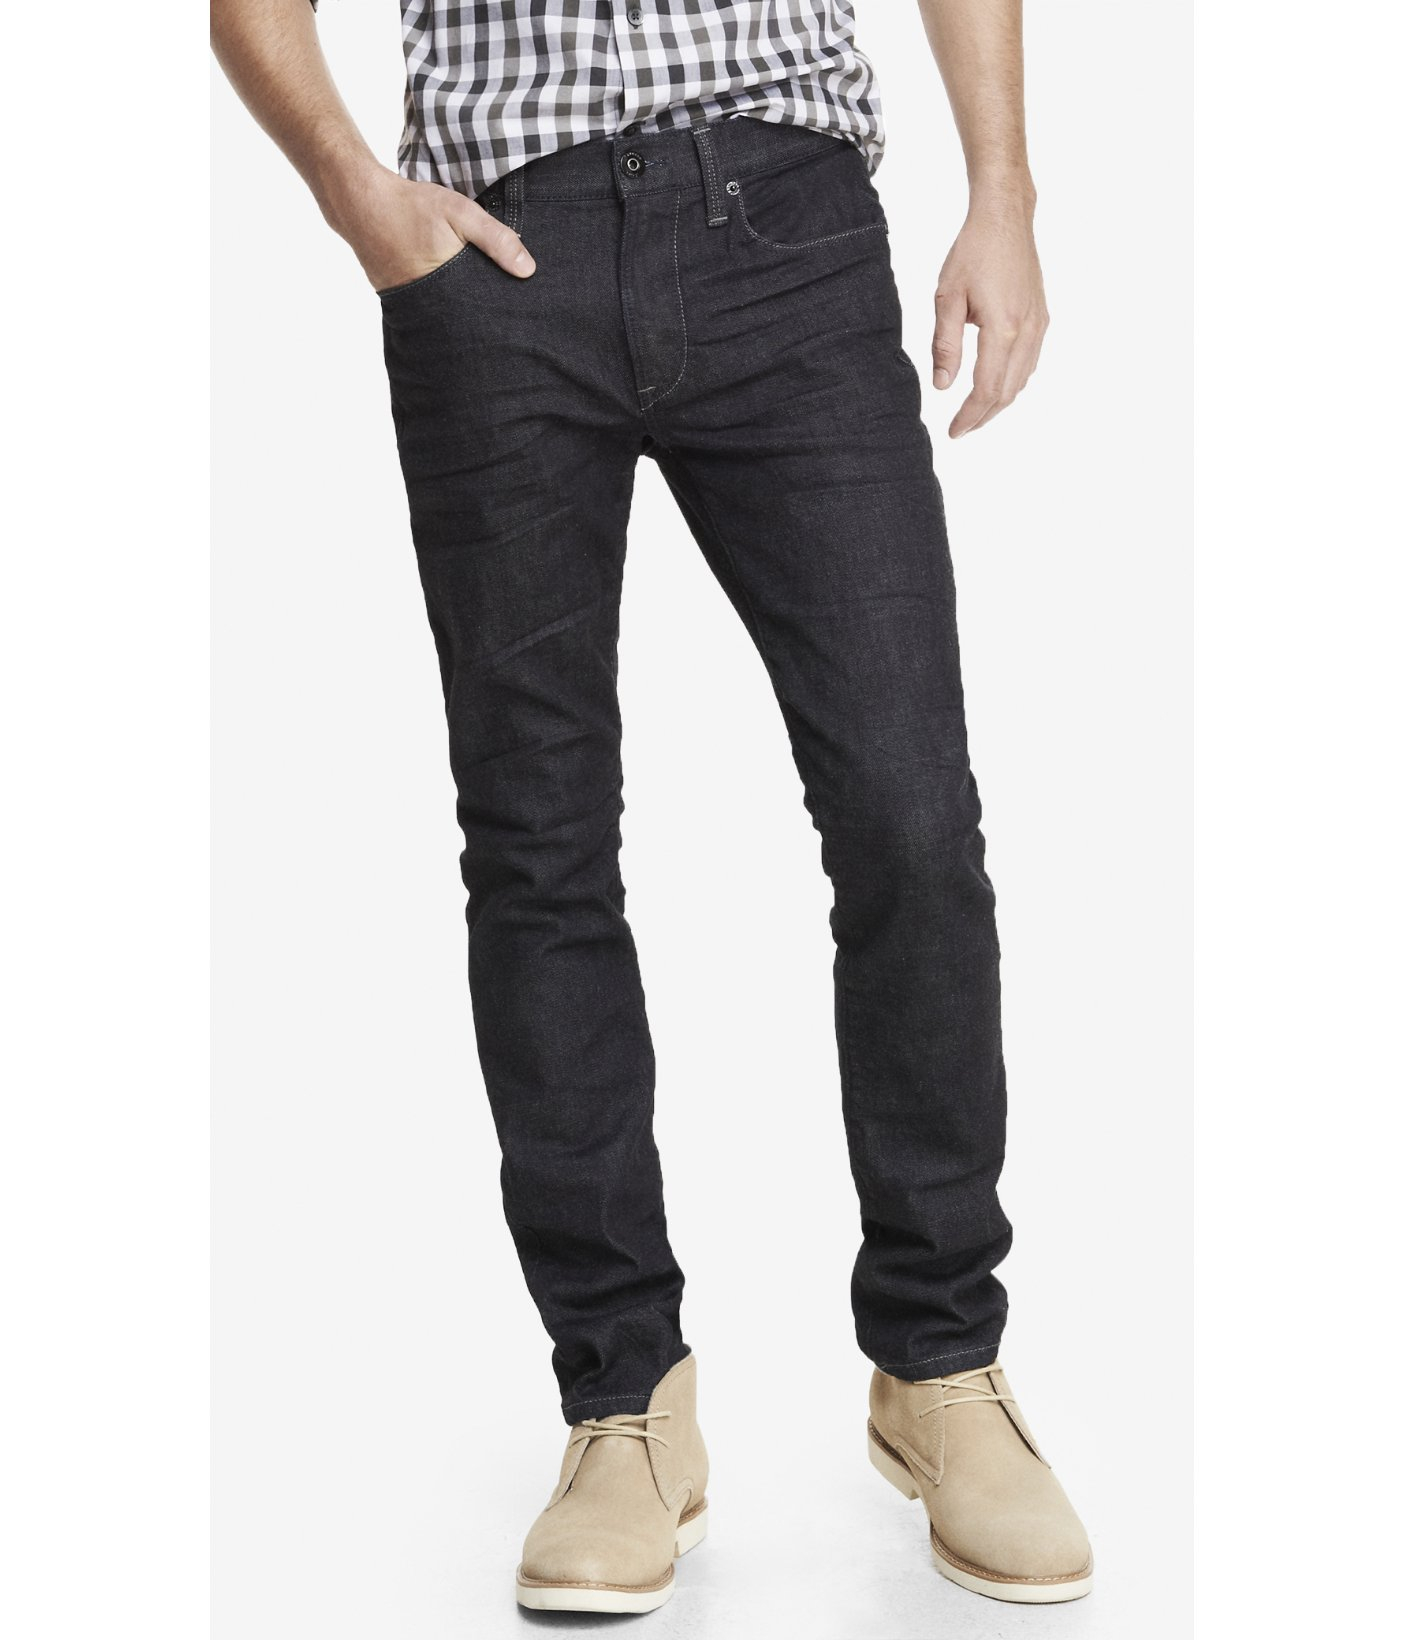 Express Skinny Jeans - Legends Jeans